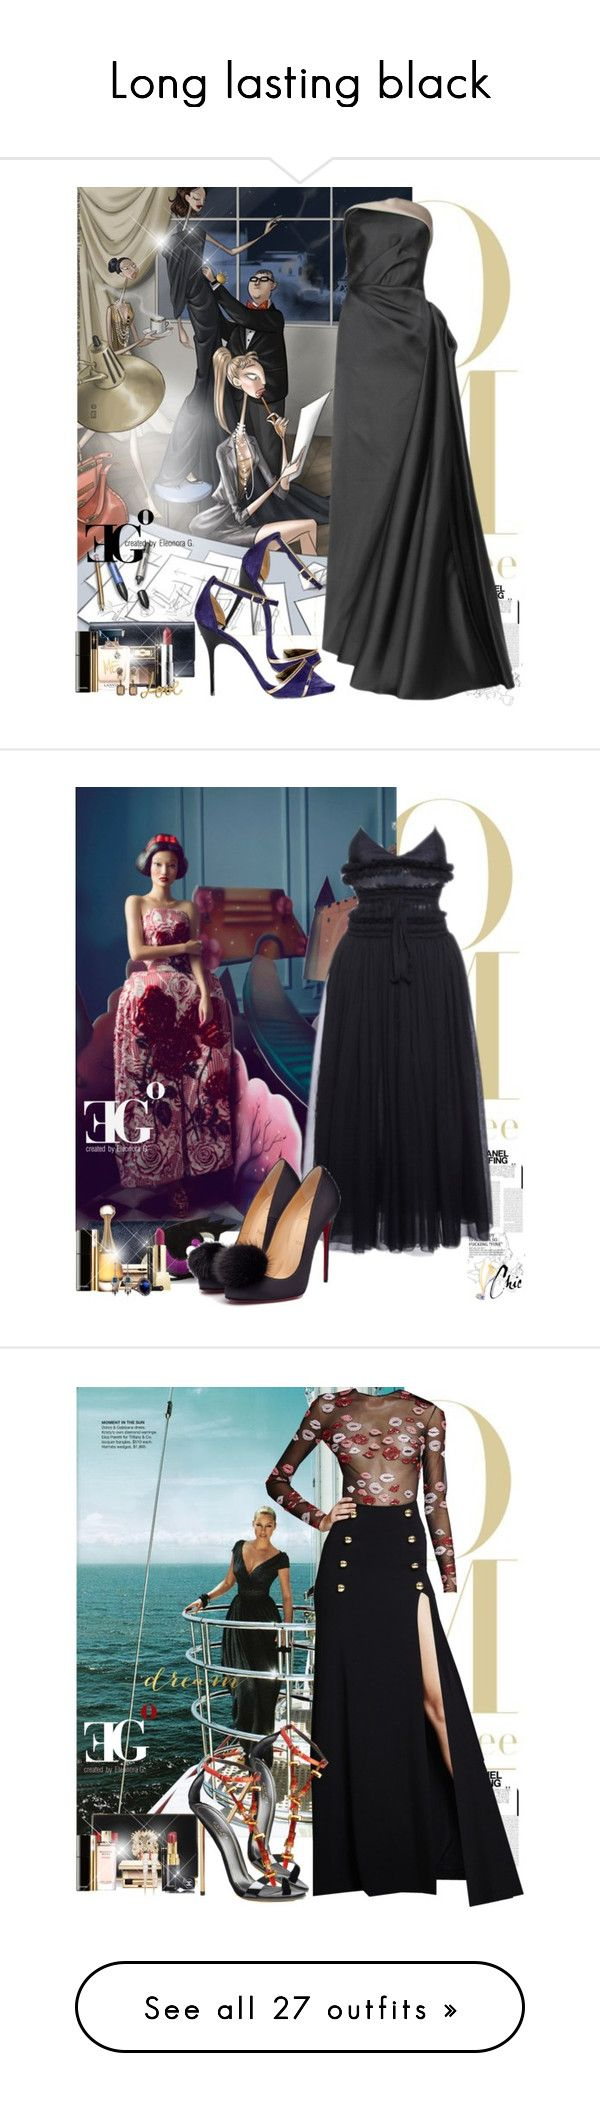 The best images about polyvore on pinterest woman clothing